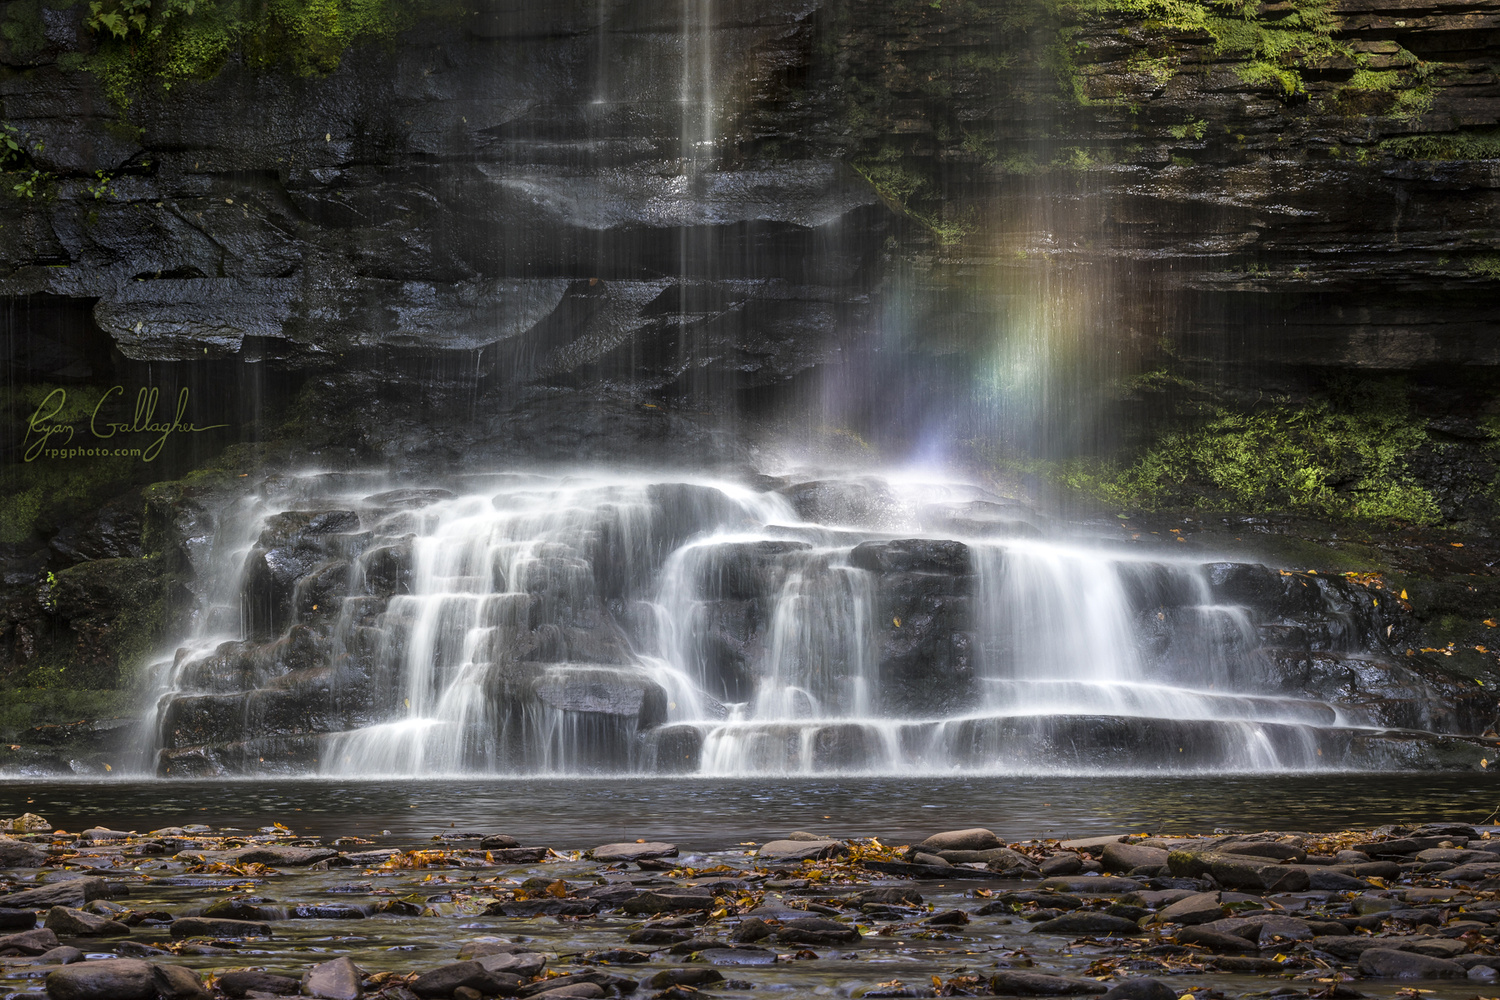 Rainbow in Harrison Wright Falls by Ryan Gallagher